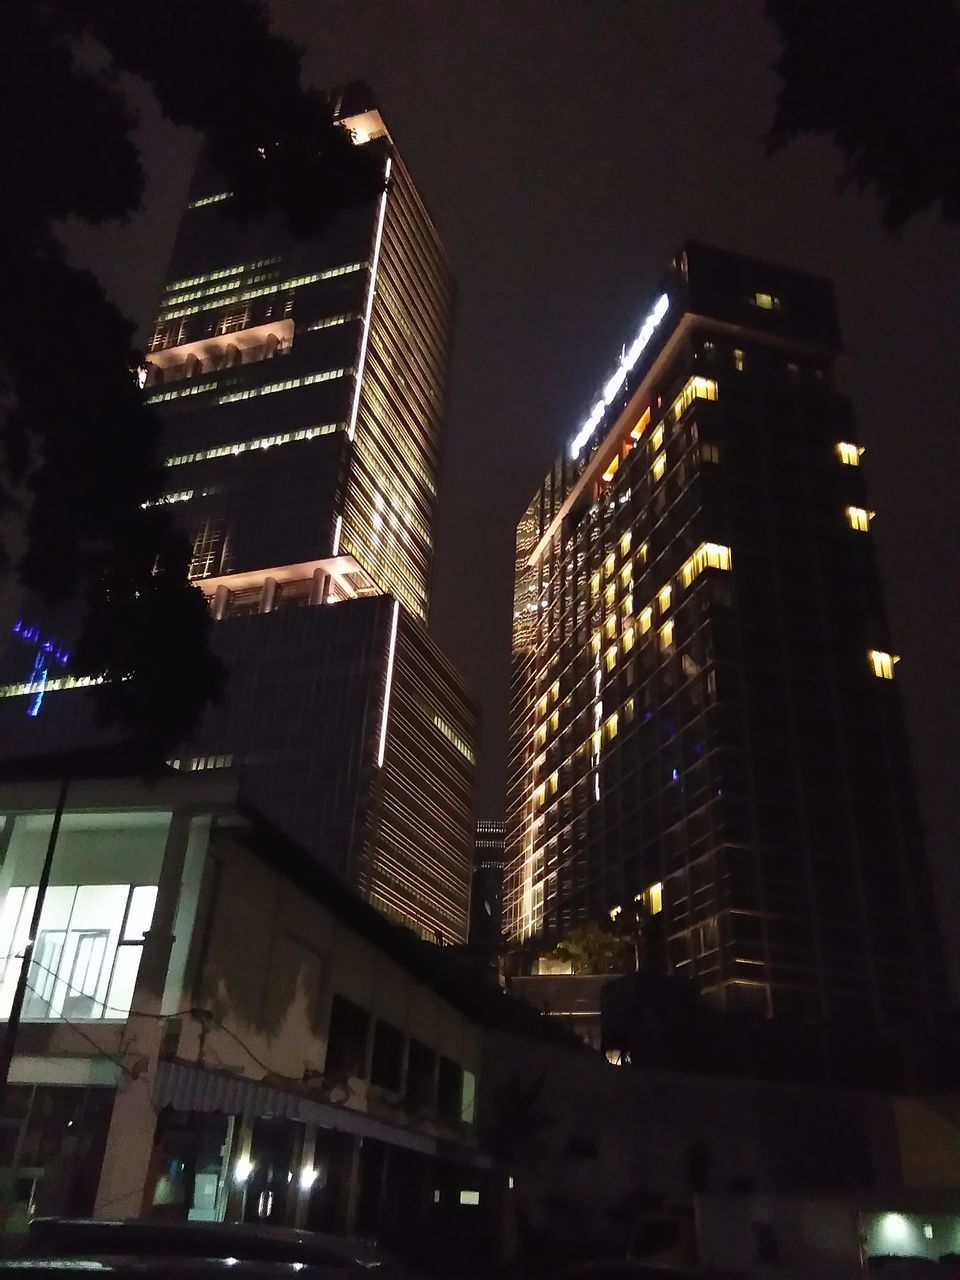 architecture, building exterior, night, illuminated, built structure, low angle view, city, skyscraper, modern, sky, no people, outdoors, cityscape